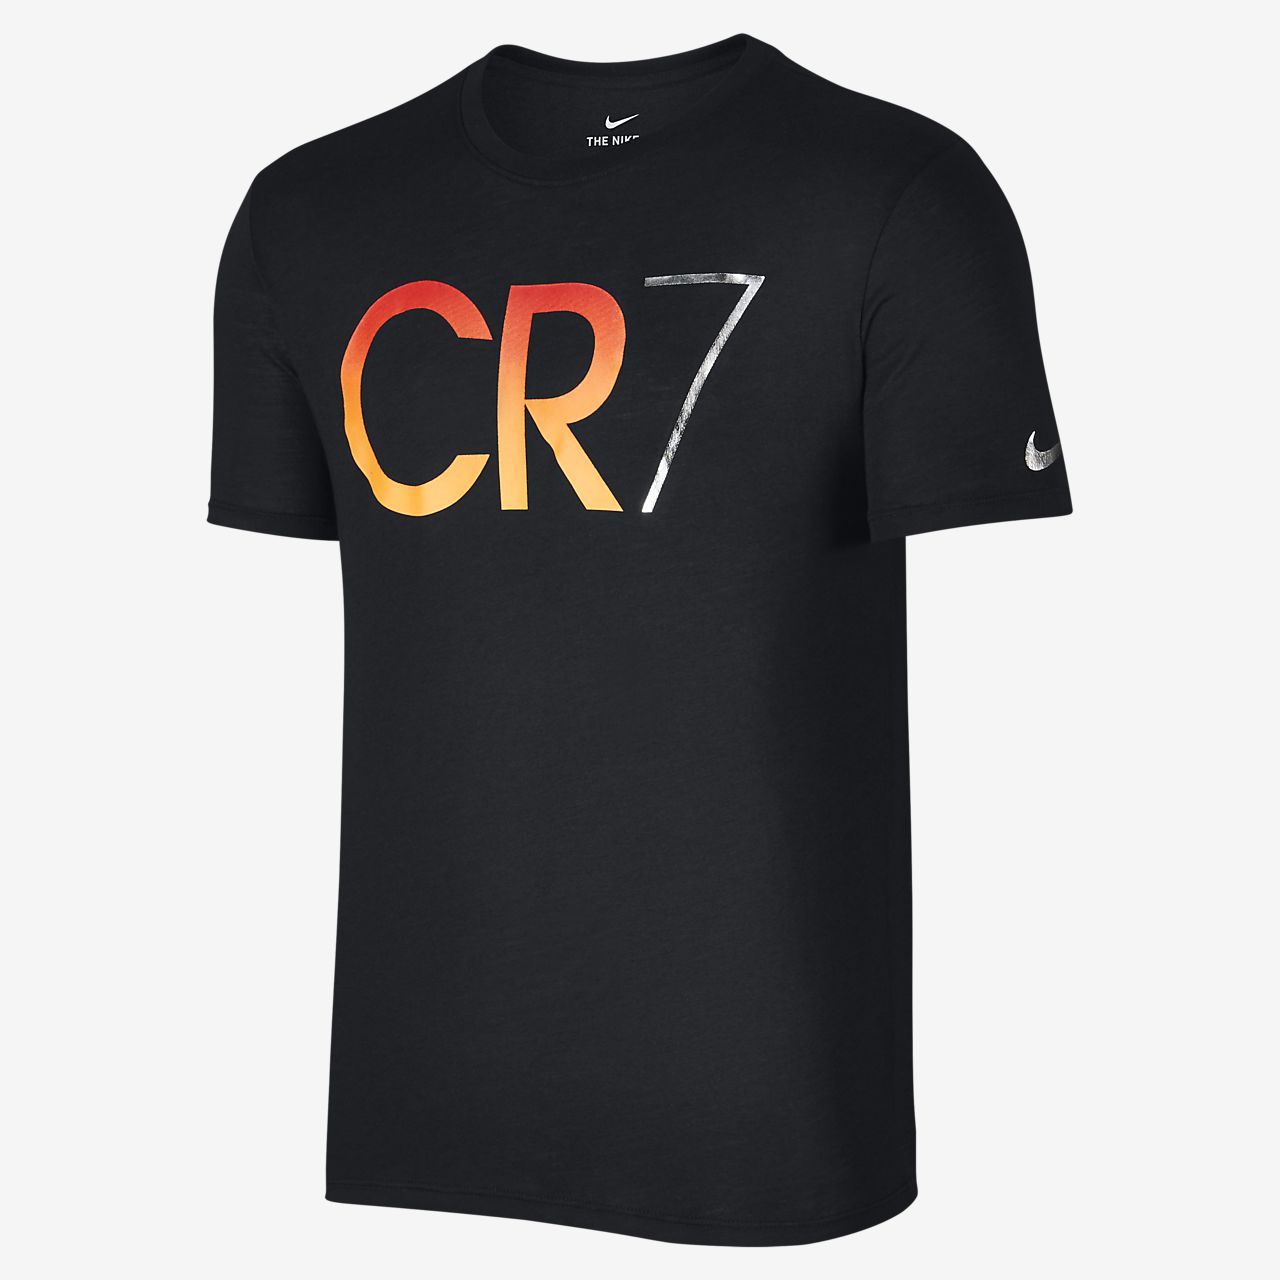 Nike CR7 Men's Football T-Shirt